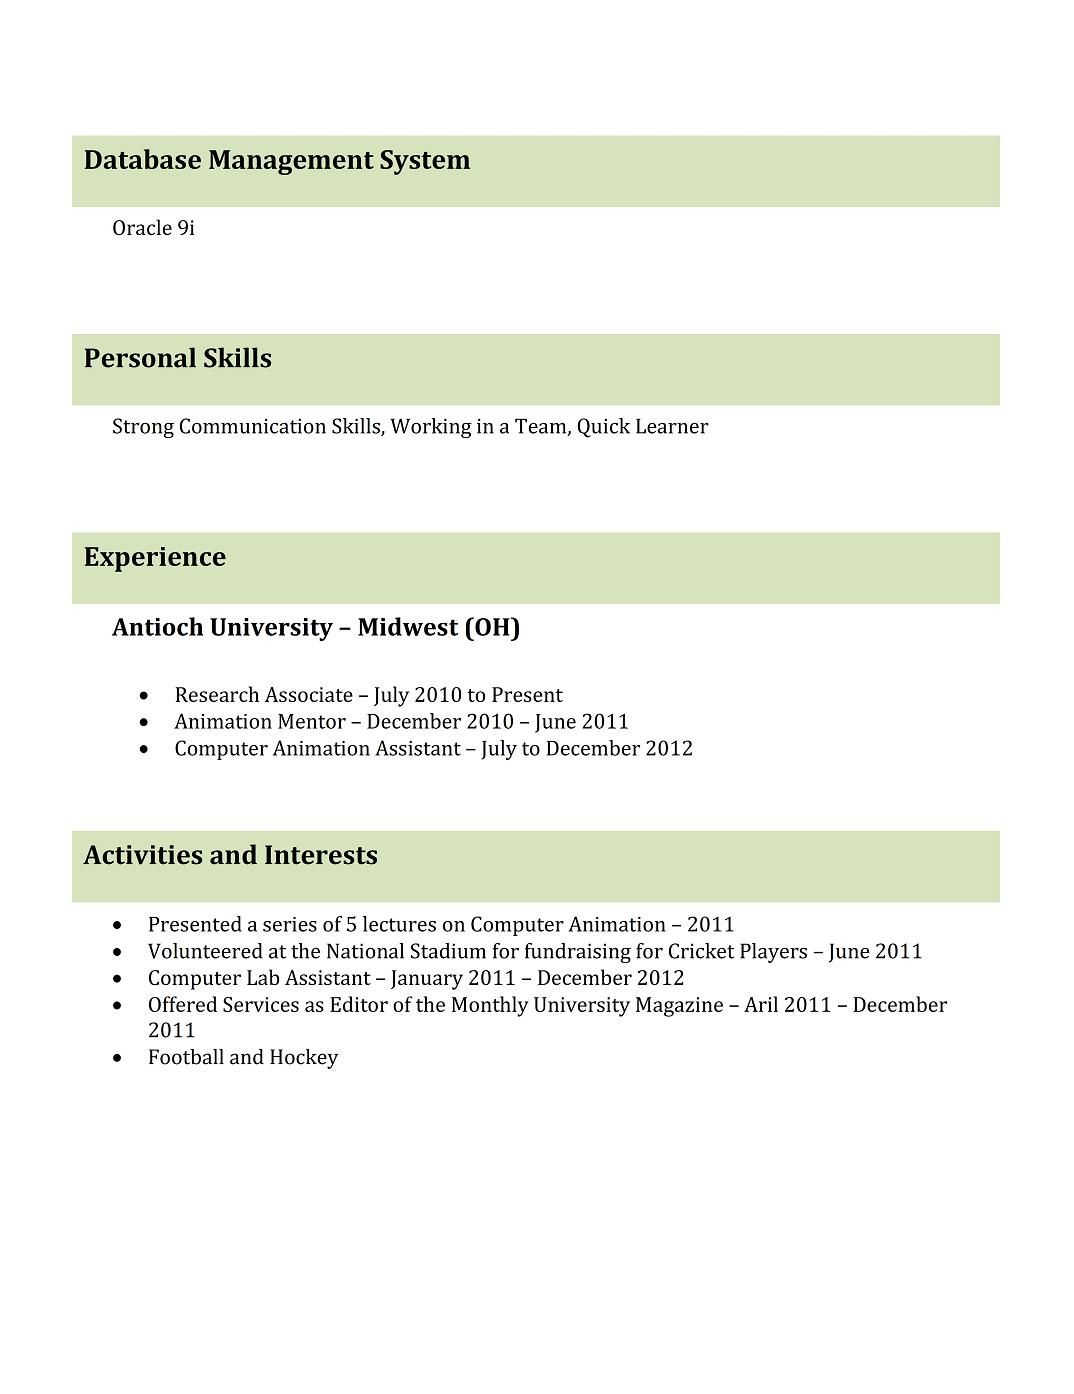 resume templates free for freshers looking the first job downloa professional samples Resume Resume For Animator Fresher